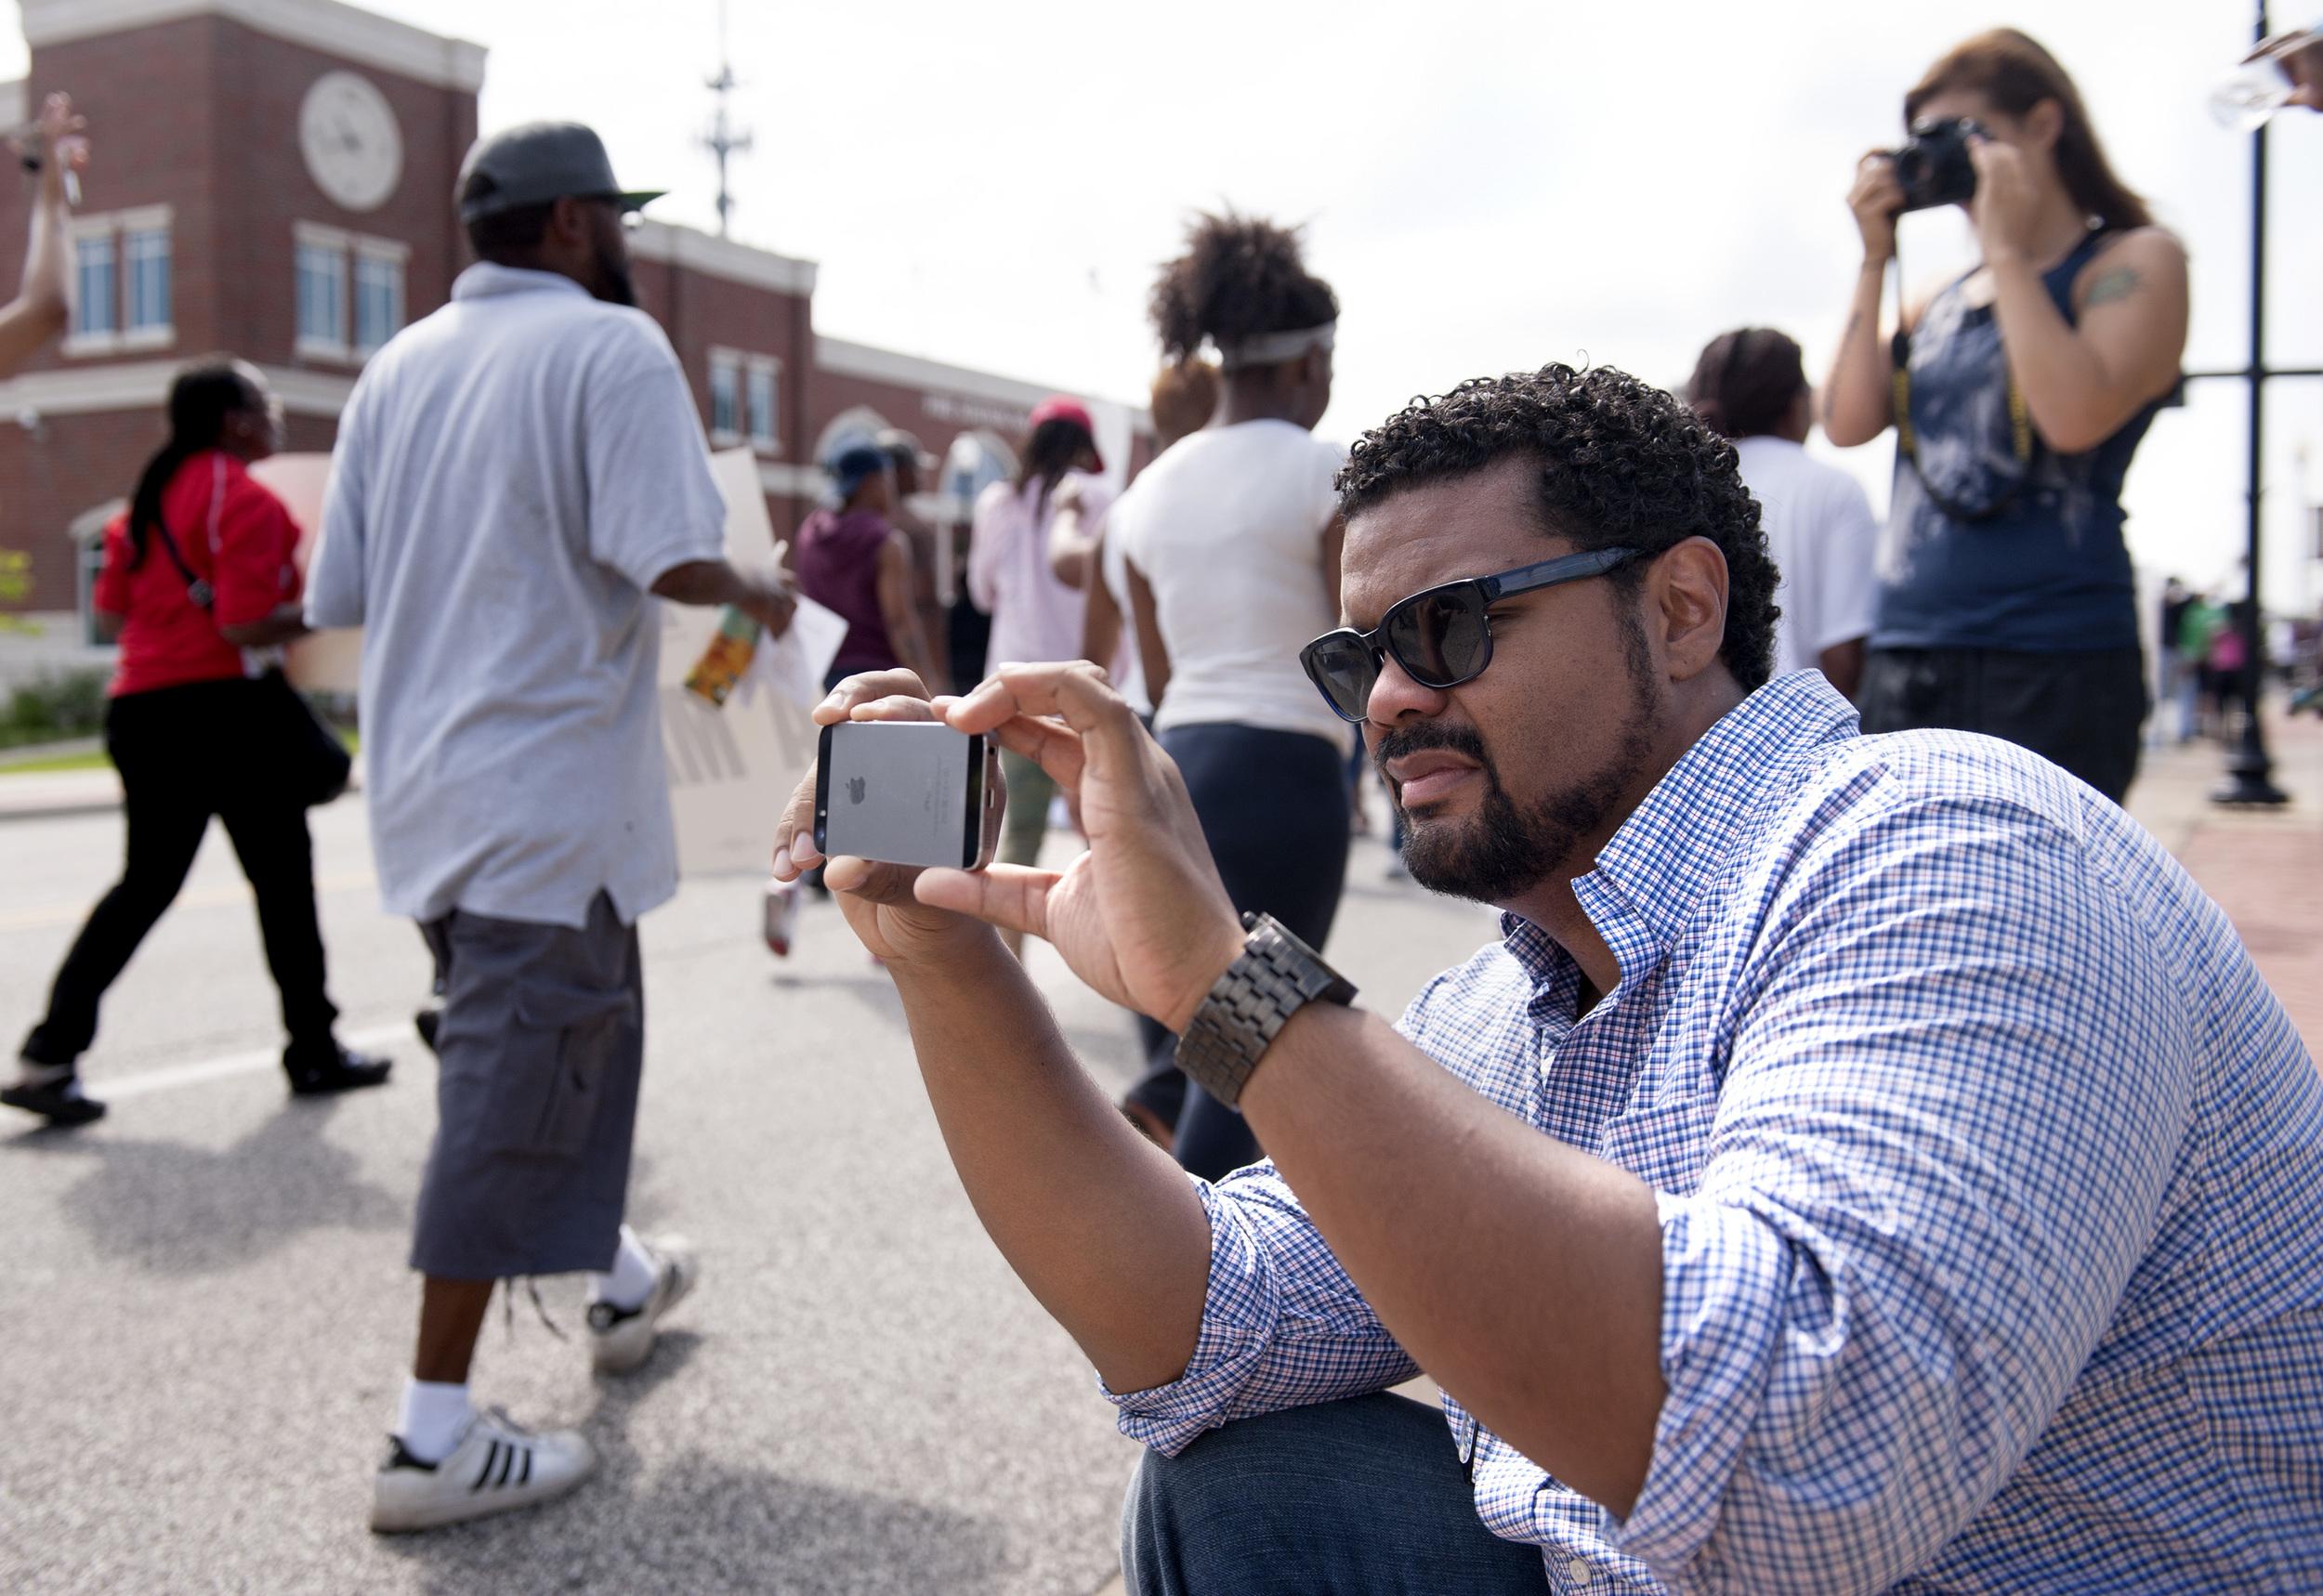 St. Louis Alderman Antonio French, 21st Ward, photographs protestors marching along Florissant Road in downtown Ferguson, Mo. Monday, Aug. 11, 2014. The group marched along the closed street, rallying in front of the town's police headquarters to protest the shooting of 18-year-old Michael Brown by Ferguson police officers. Brown, who was killed in a confrontation with police in the St. Louis suburb, was shot Saturday, Aug. 9, 2014, and died following the confrontation with police. (AP Photo/Sid Hastings)